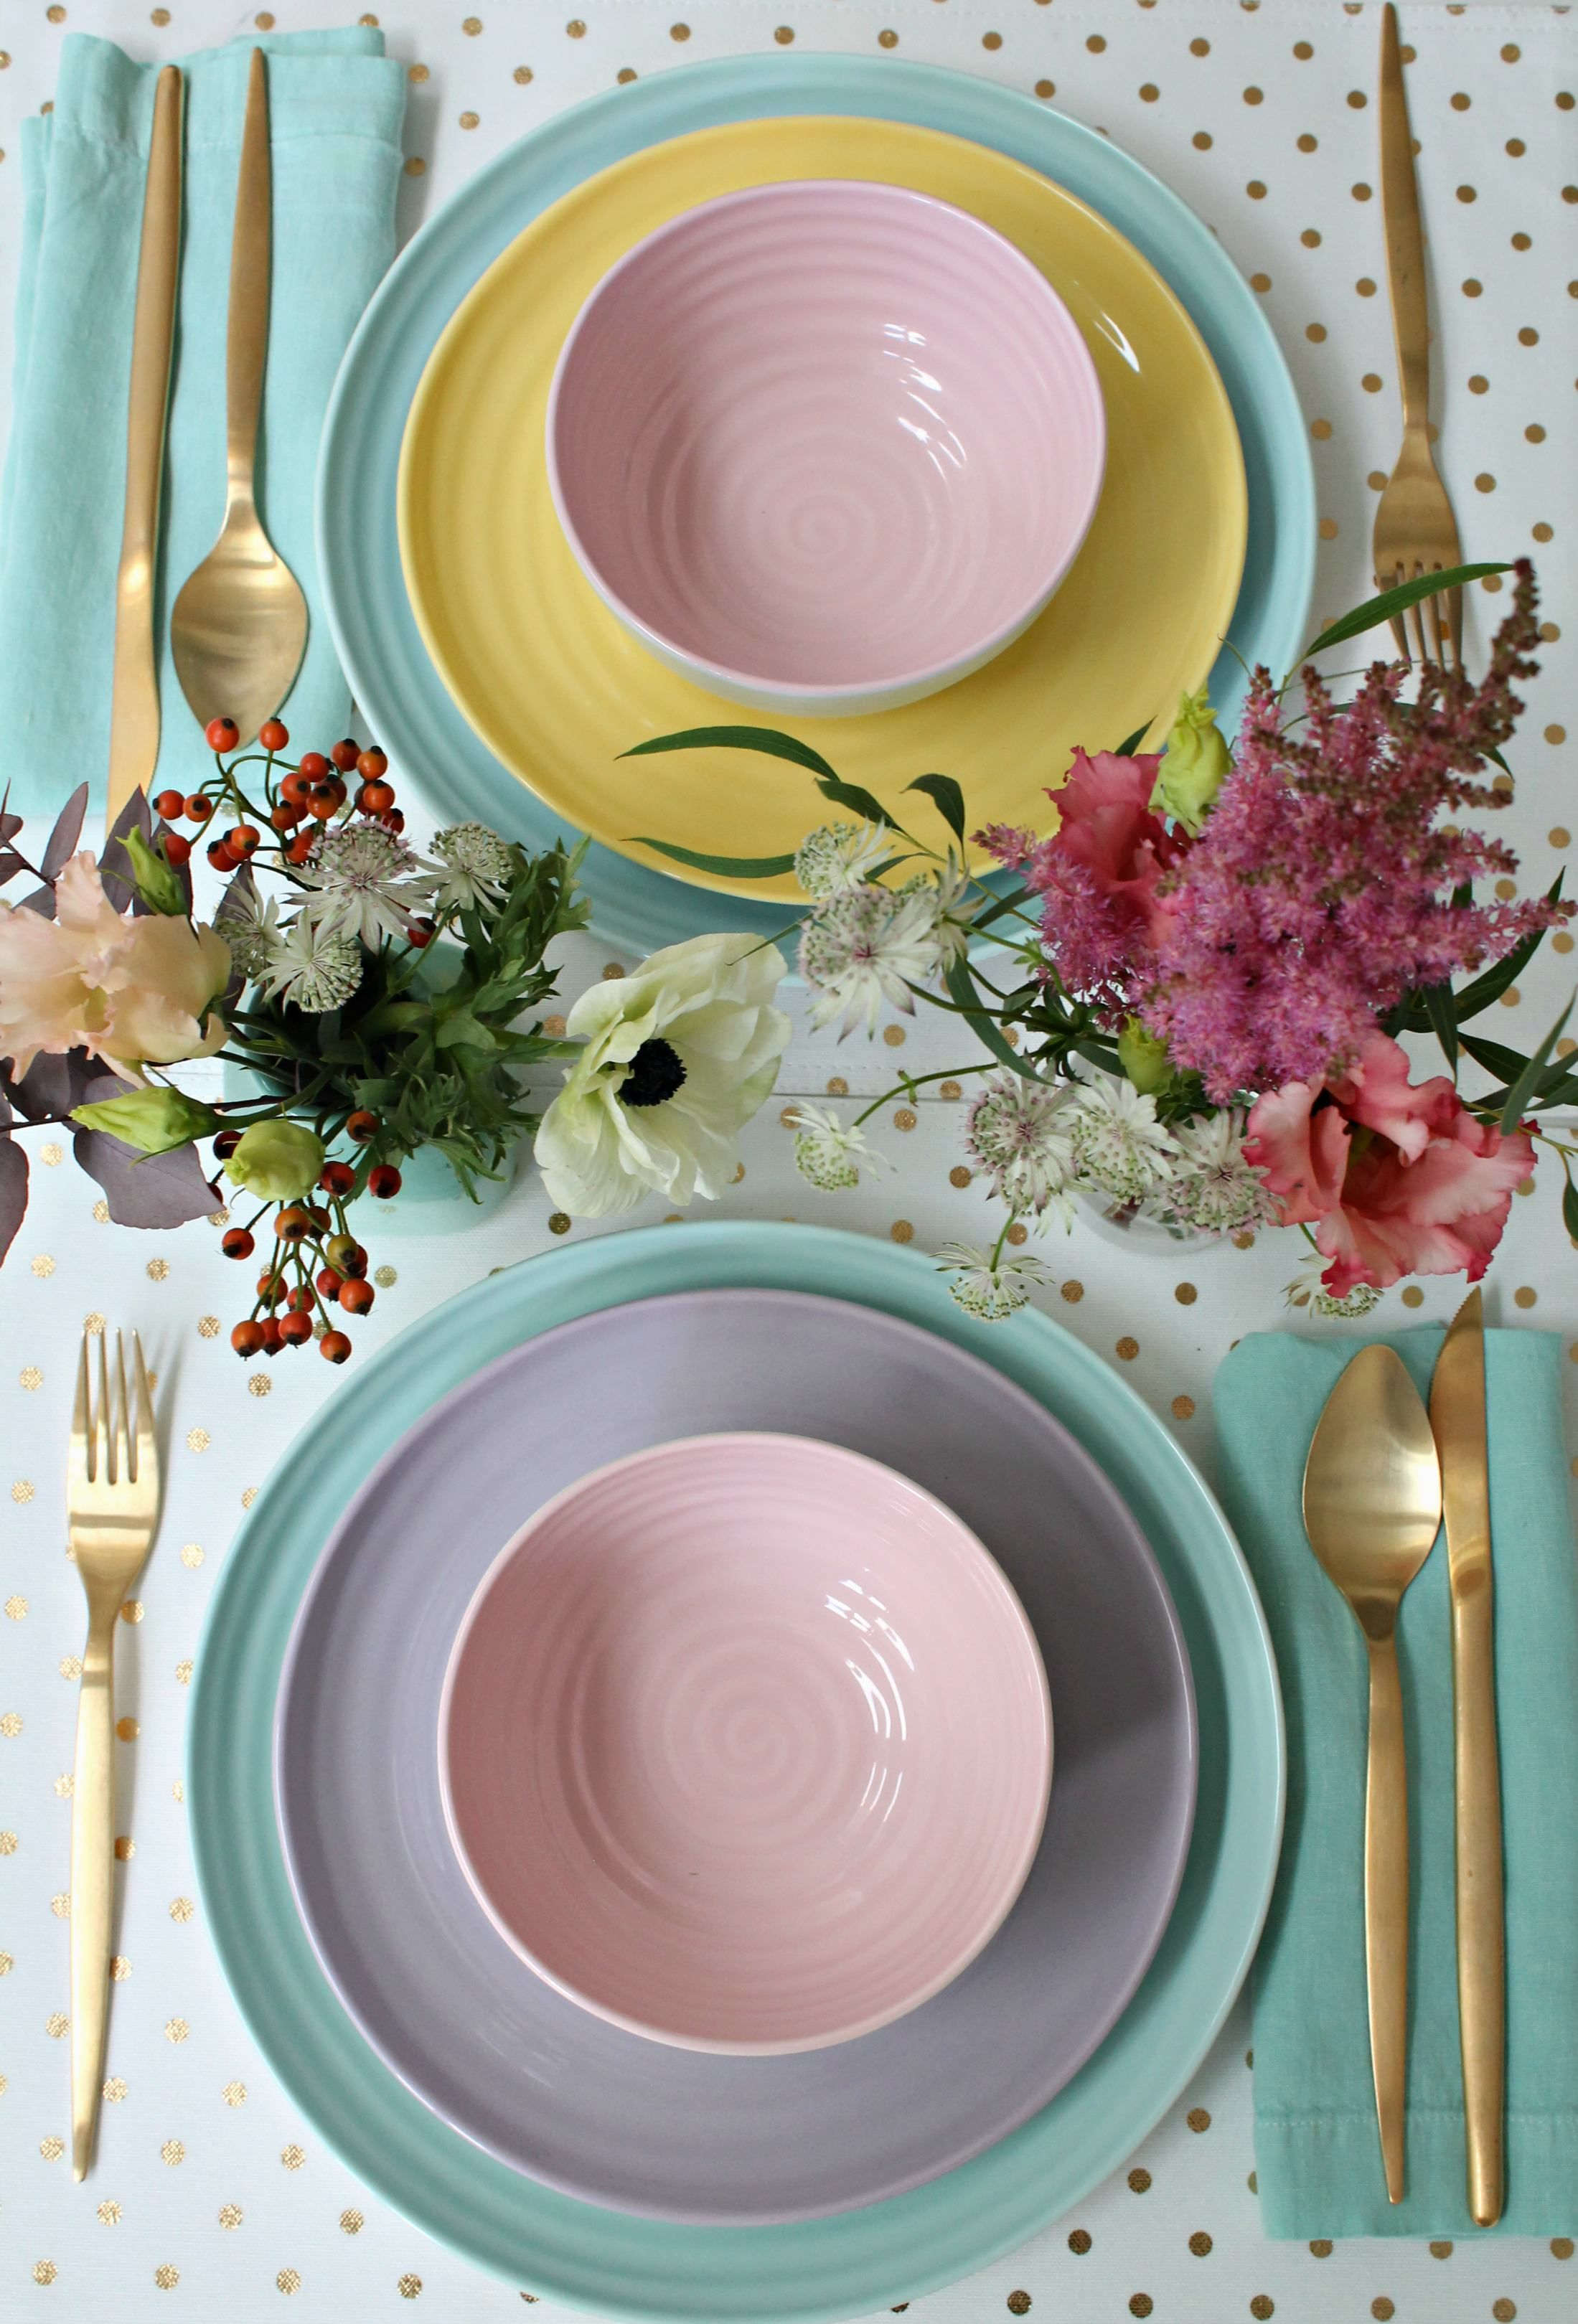 Sophie conran for portmeirion colour pop tableware range is a delight of pretty pastel hues in plates bowls and cups for your home